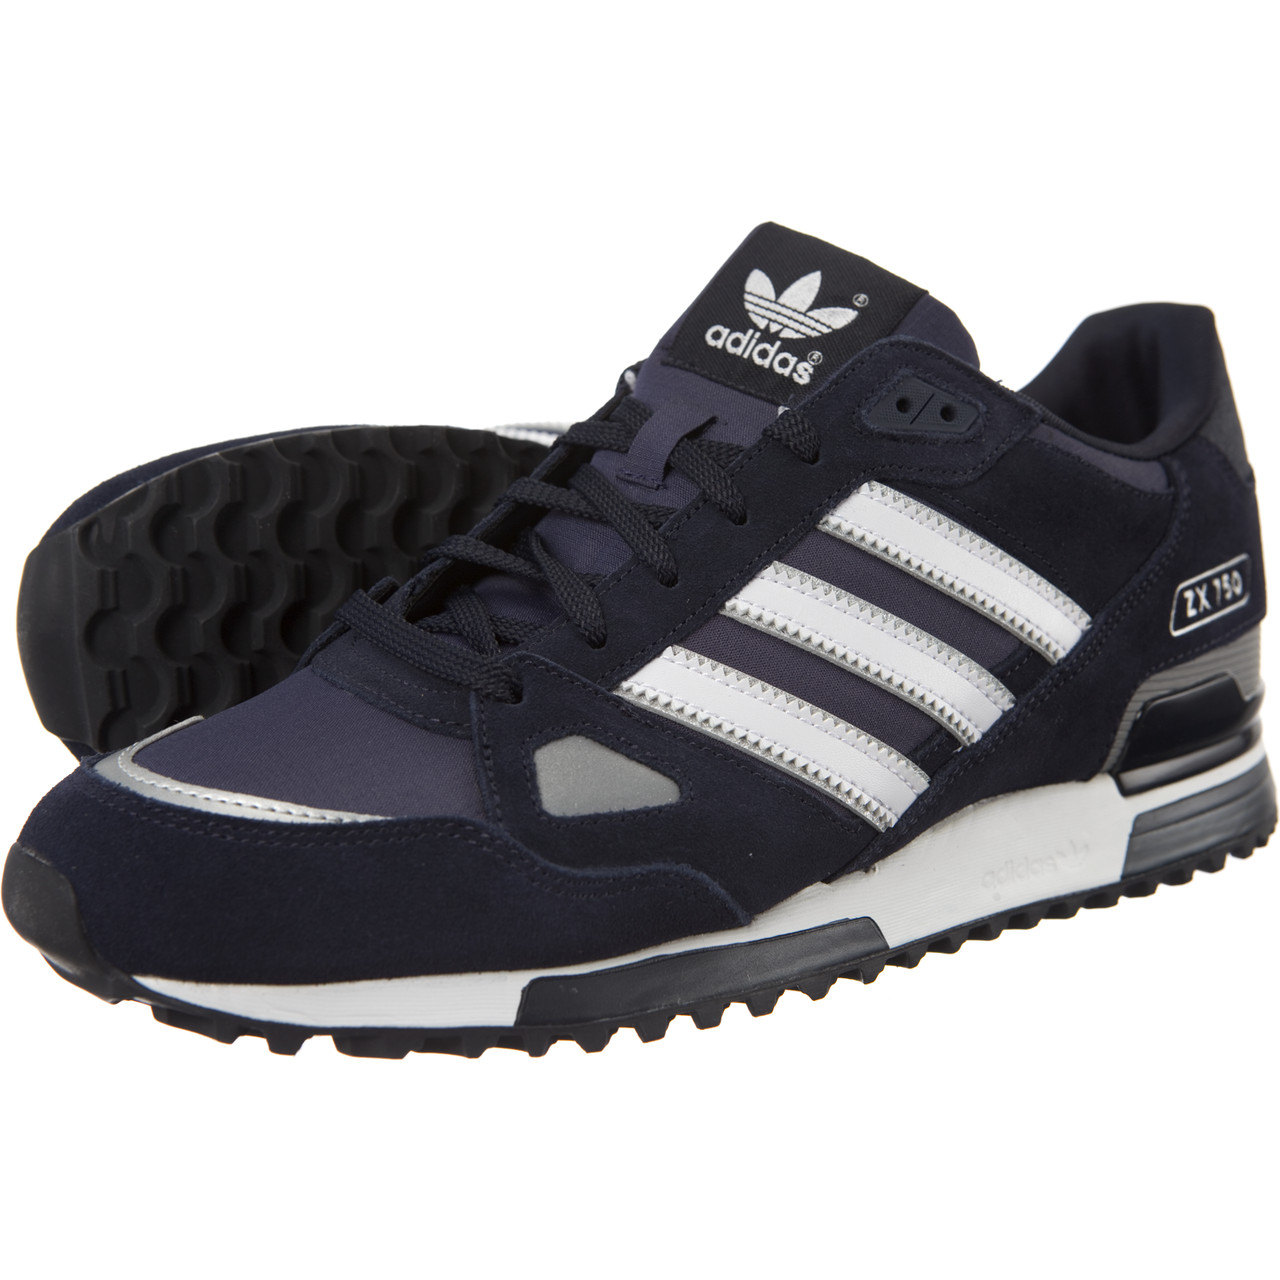 buy cheap online adidas zx 750 navy white fine shoes. Black Bedroom Furniture Sets. Home Design Ideas